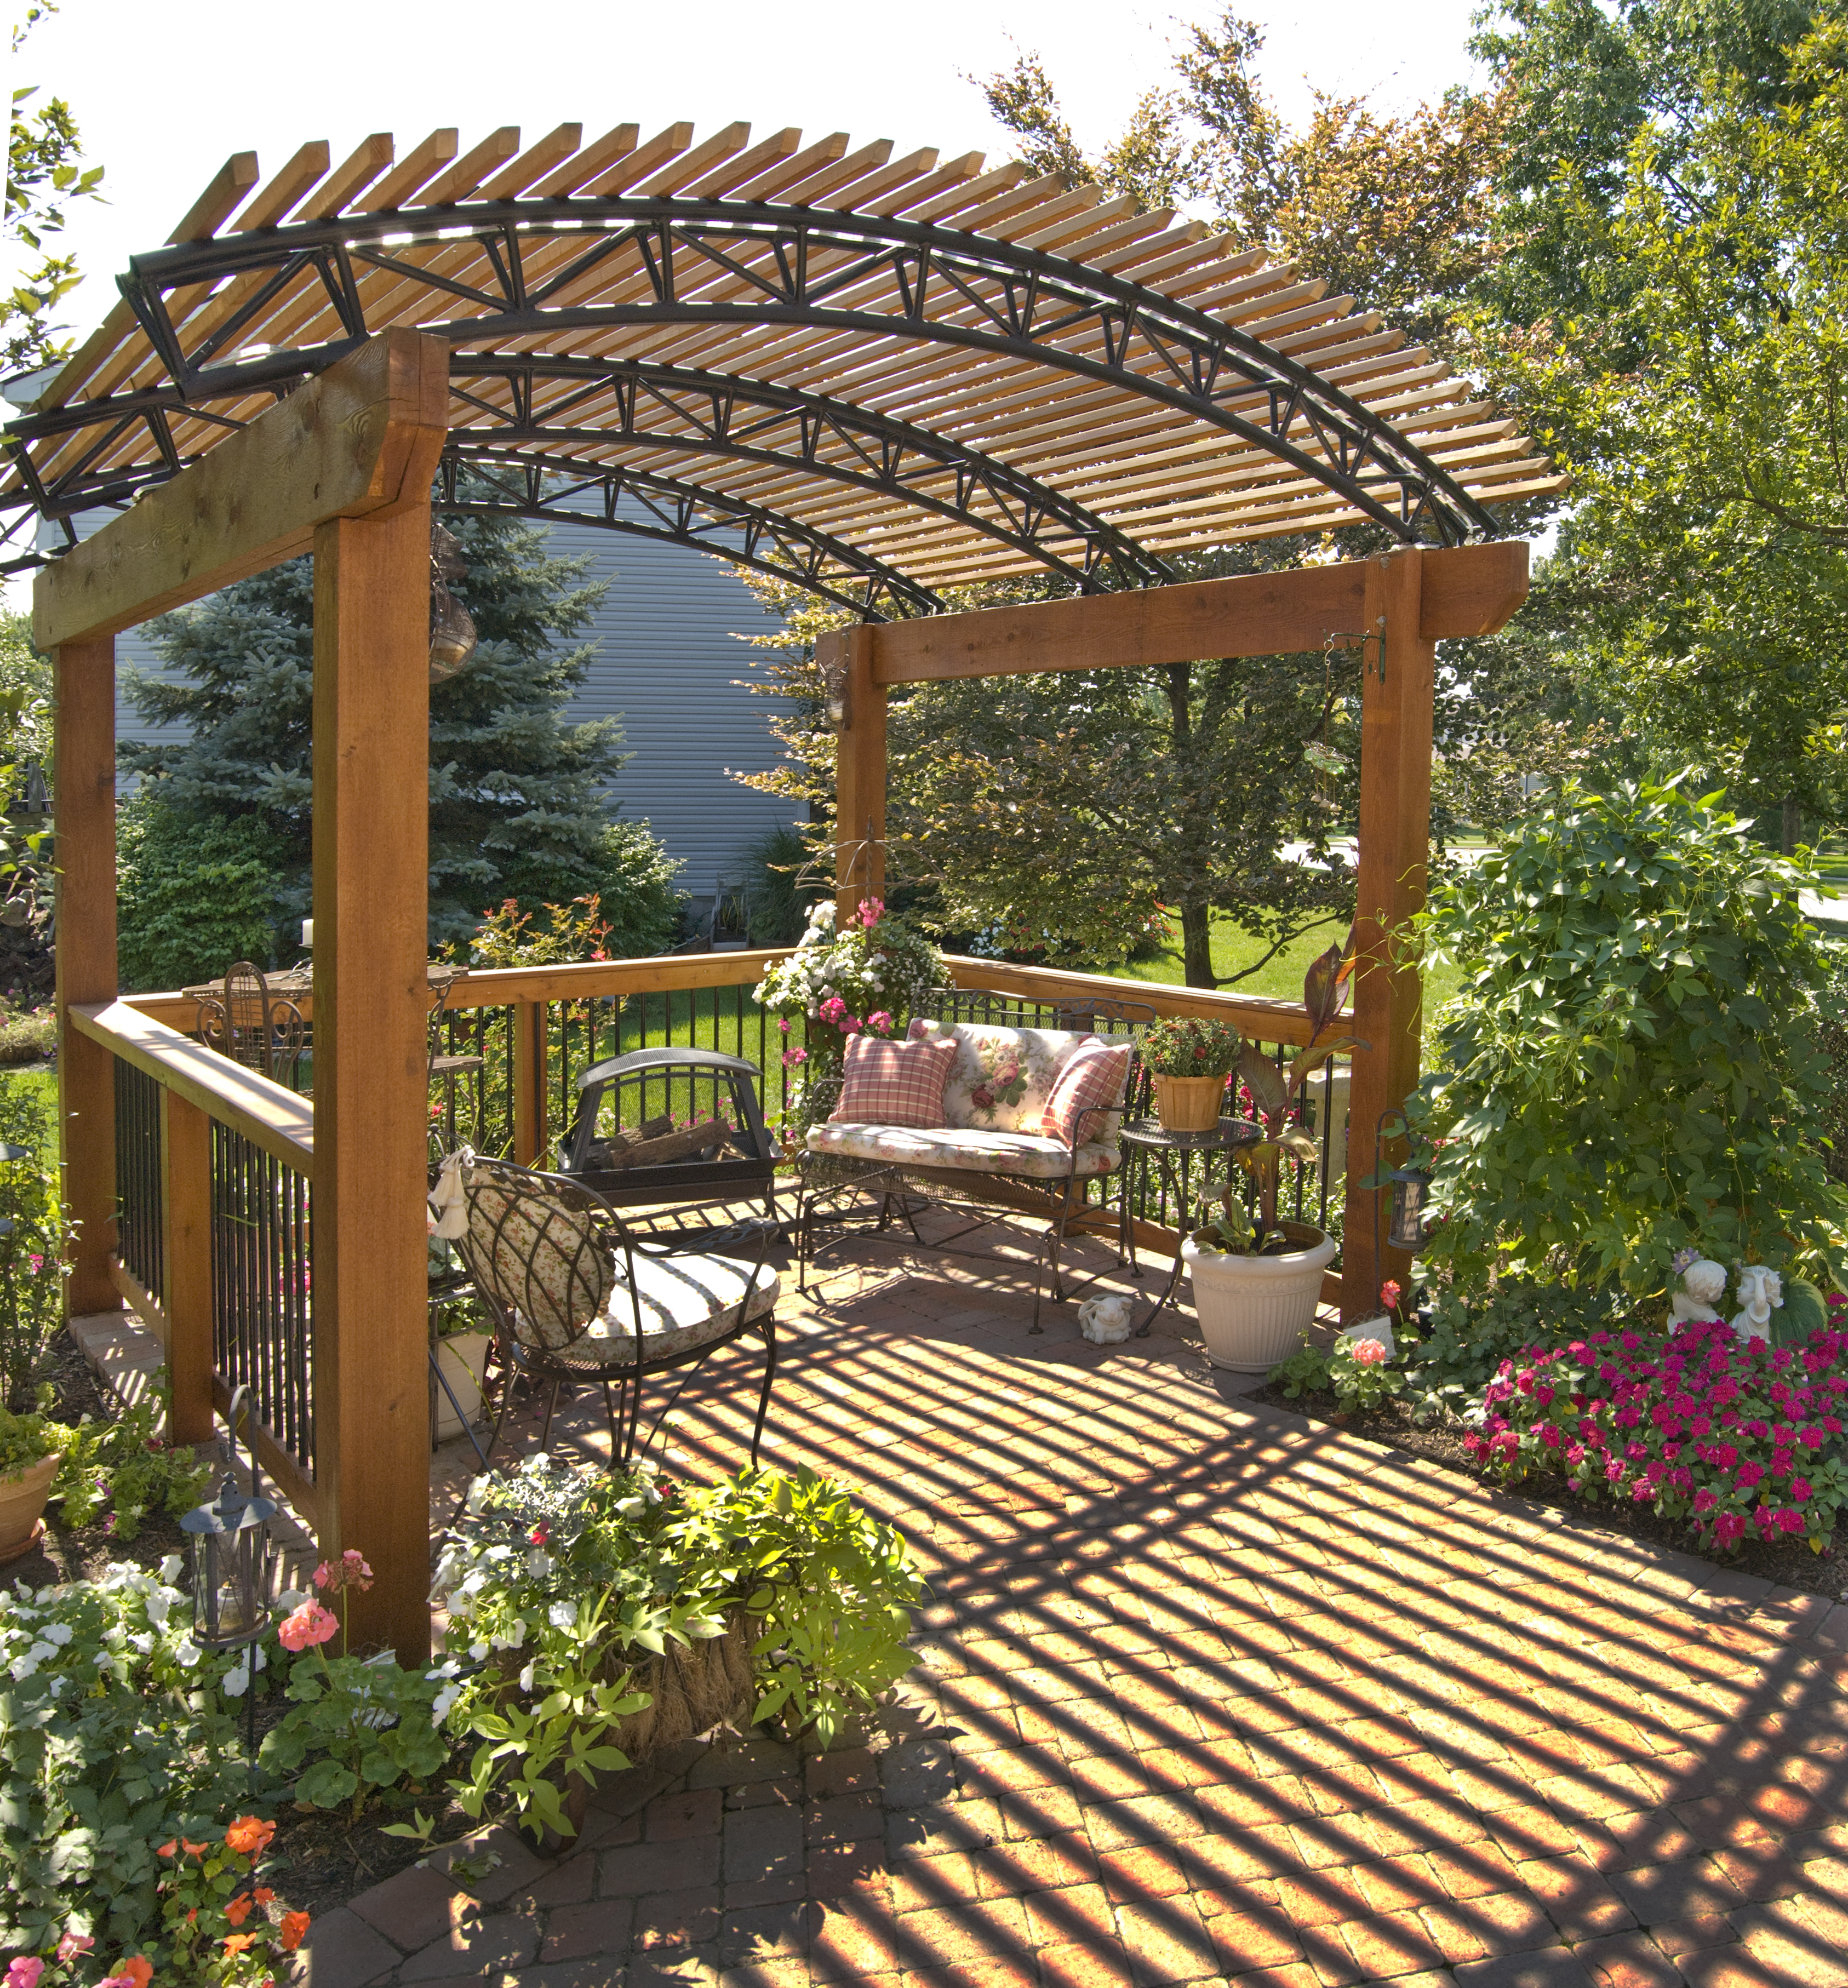 Patio Deck Material Options: Different Types Of Decking Materials For Your Deck